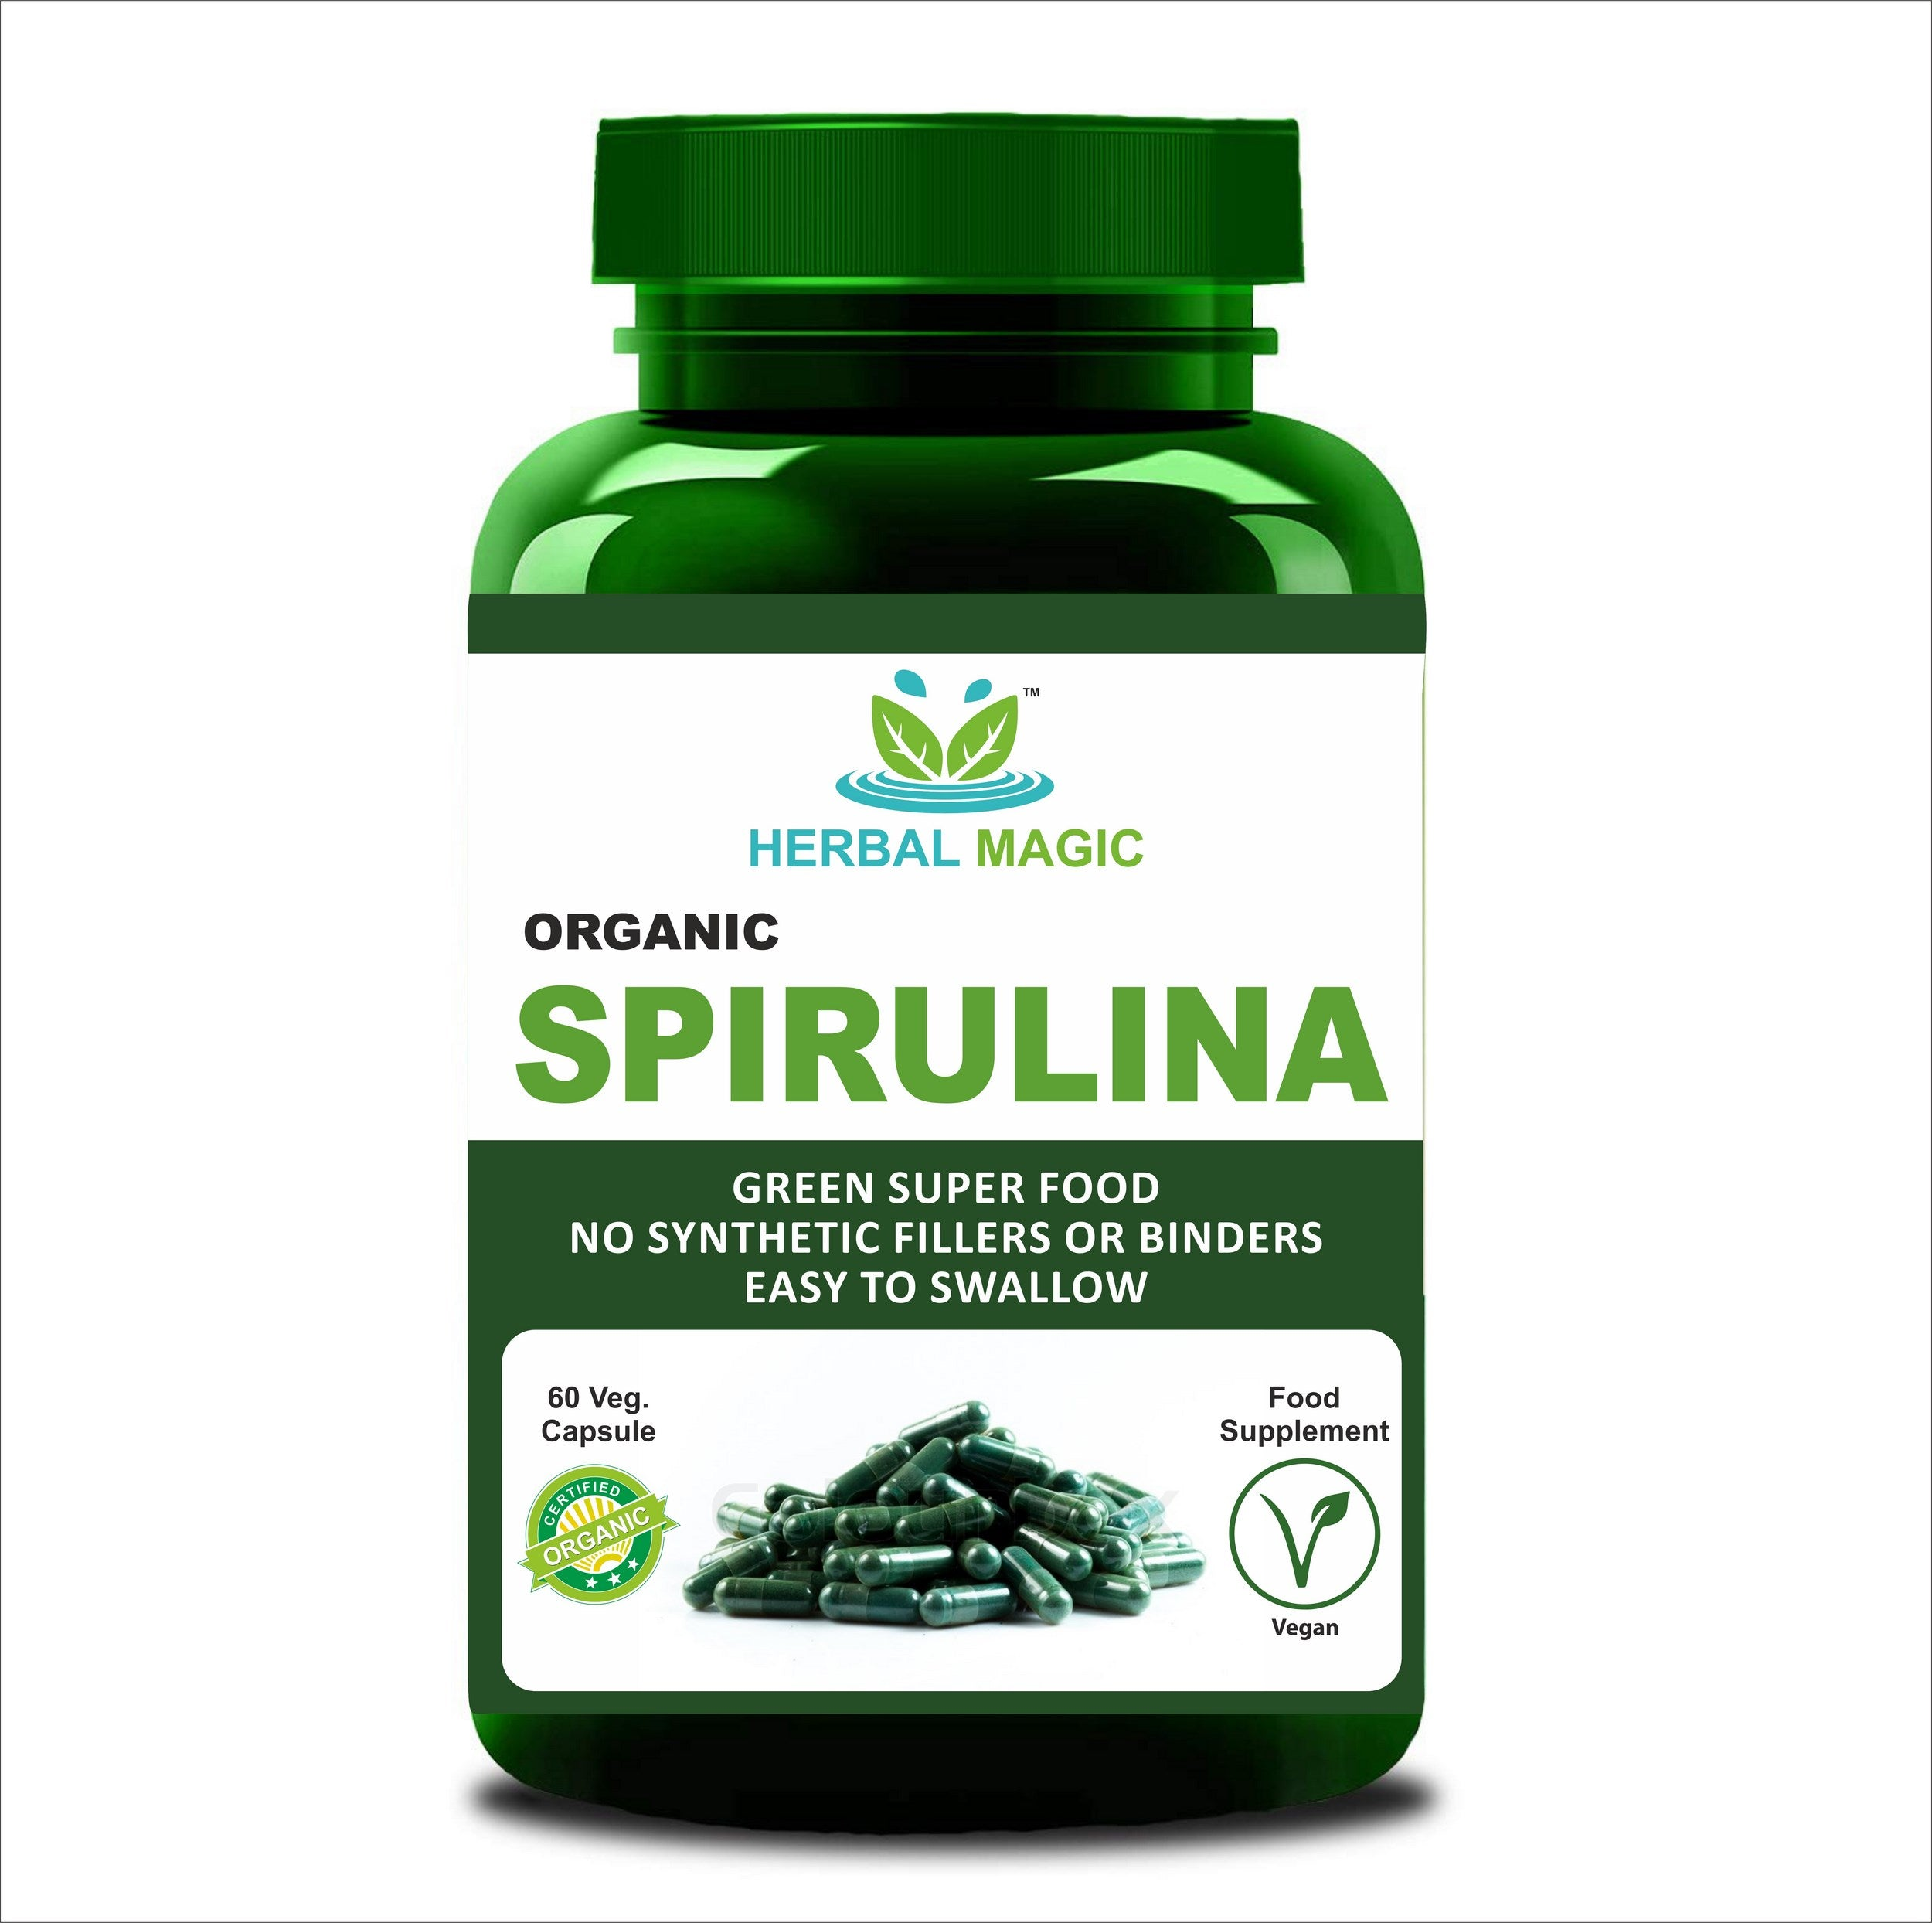 Please select one - Organic Spirulina Powder (100g) or Capsule (60) High in Protein, Calcium and Vitamins, B12, Nutrient Rich Superfood - Whole Plant Used